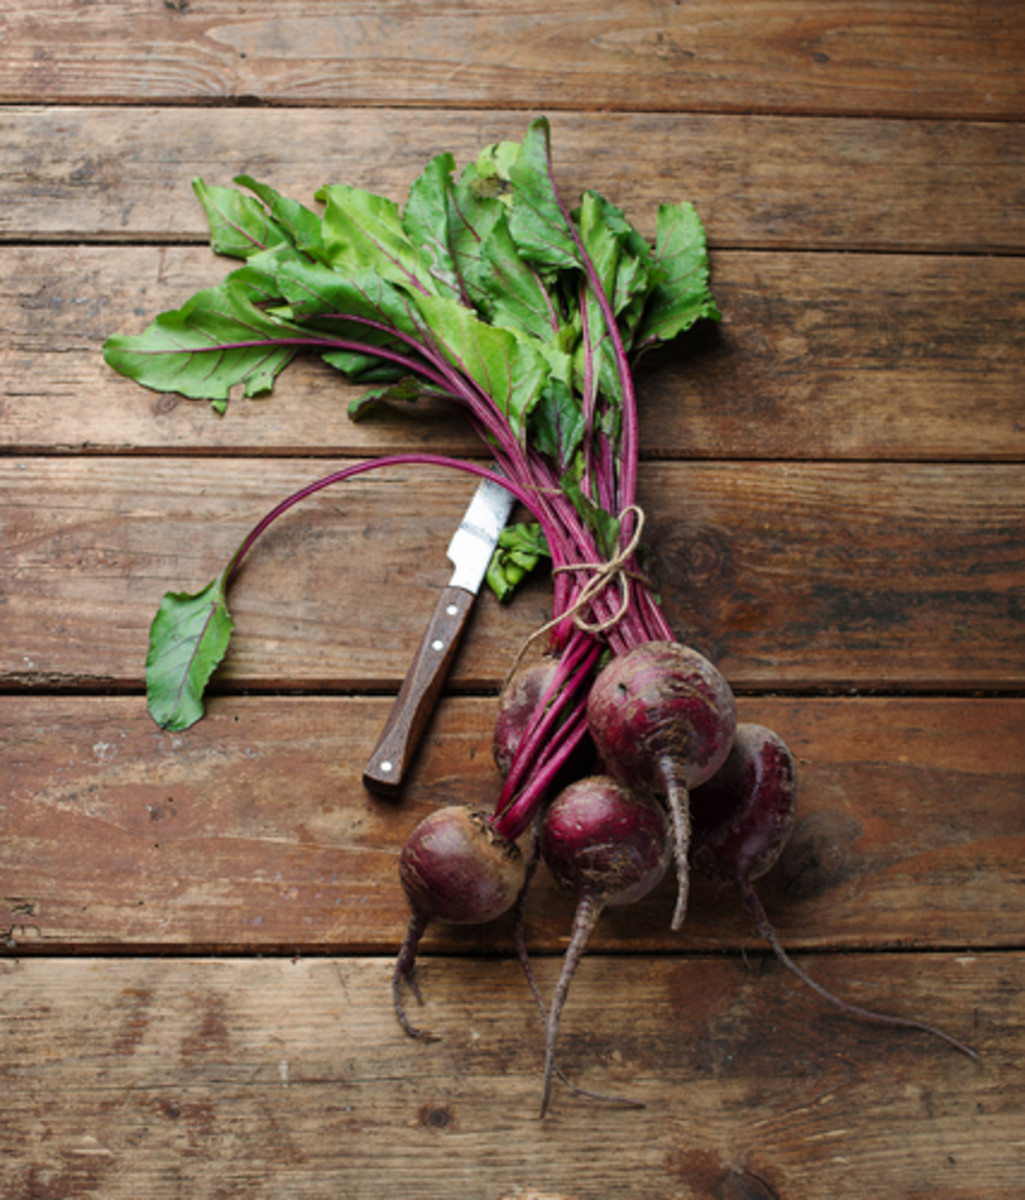 Getting to the Root: Growing Root Vegetables Successfully